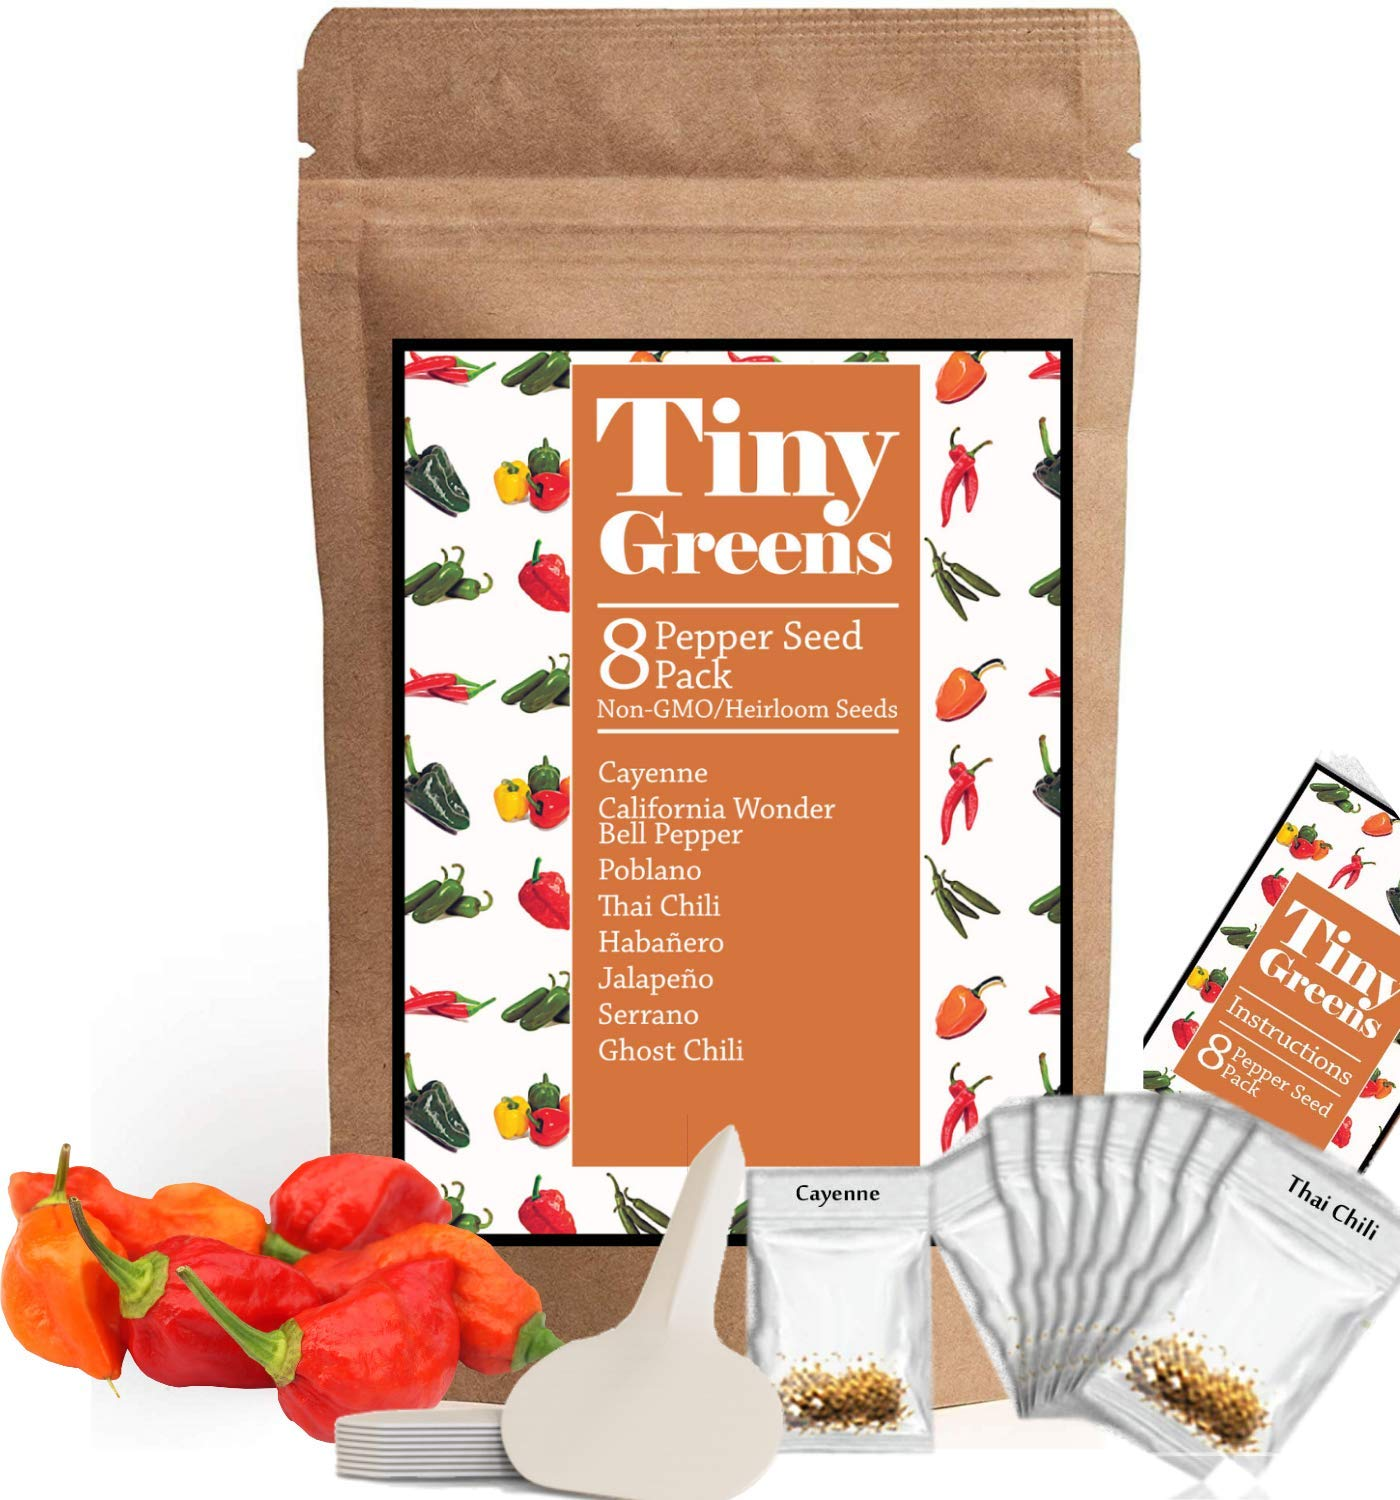 Heirloom Pepper Seed Variety Pack | 8 Hot & Sweet Peppers For Planting | Garden Vegetable Seeds | Cayenne, California Bell Pepper, Poblano, Thai Chili, Habanero, Jalepeno, Serrano, Ghost Pepper by Tiny Greens